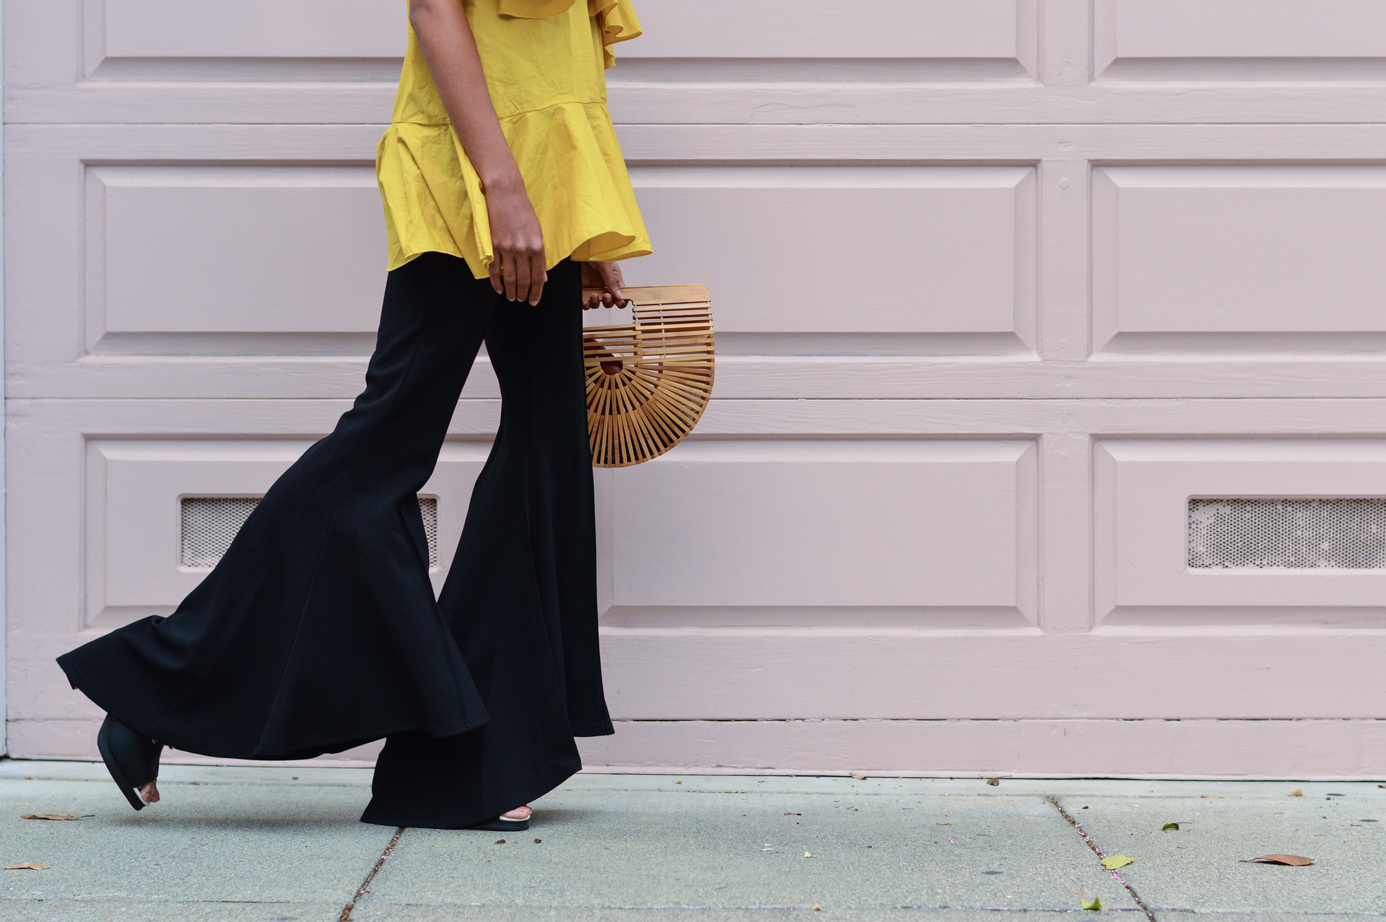 ruffles-mustard-yellow-fall-style-flared-bell-bottom-pants-blogger-outfit 7